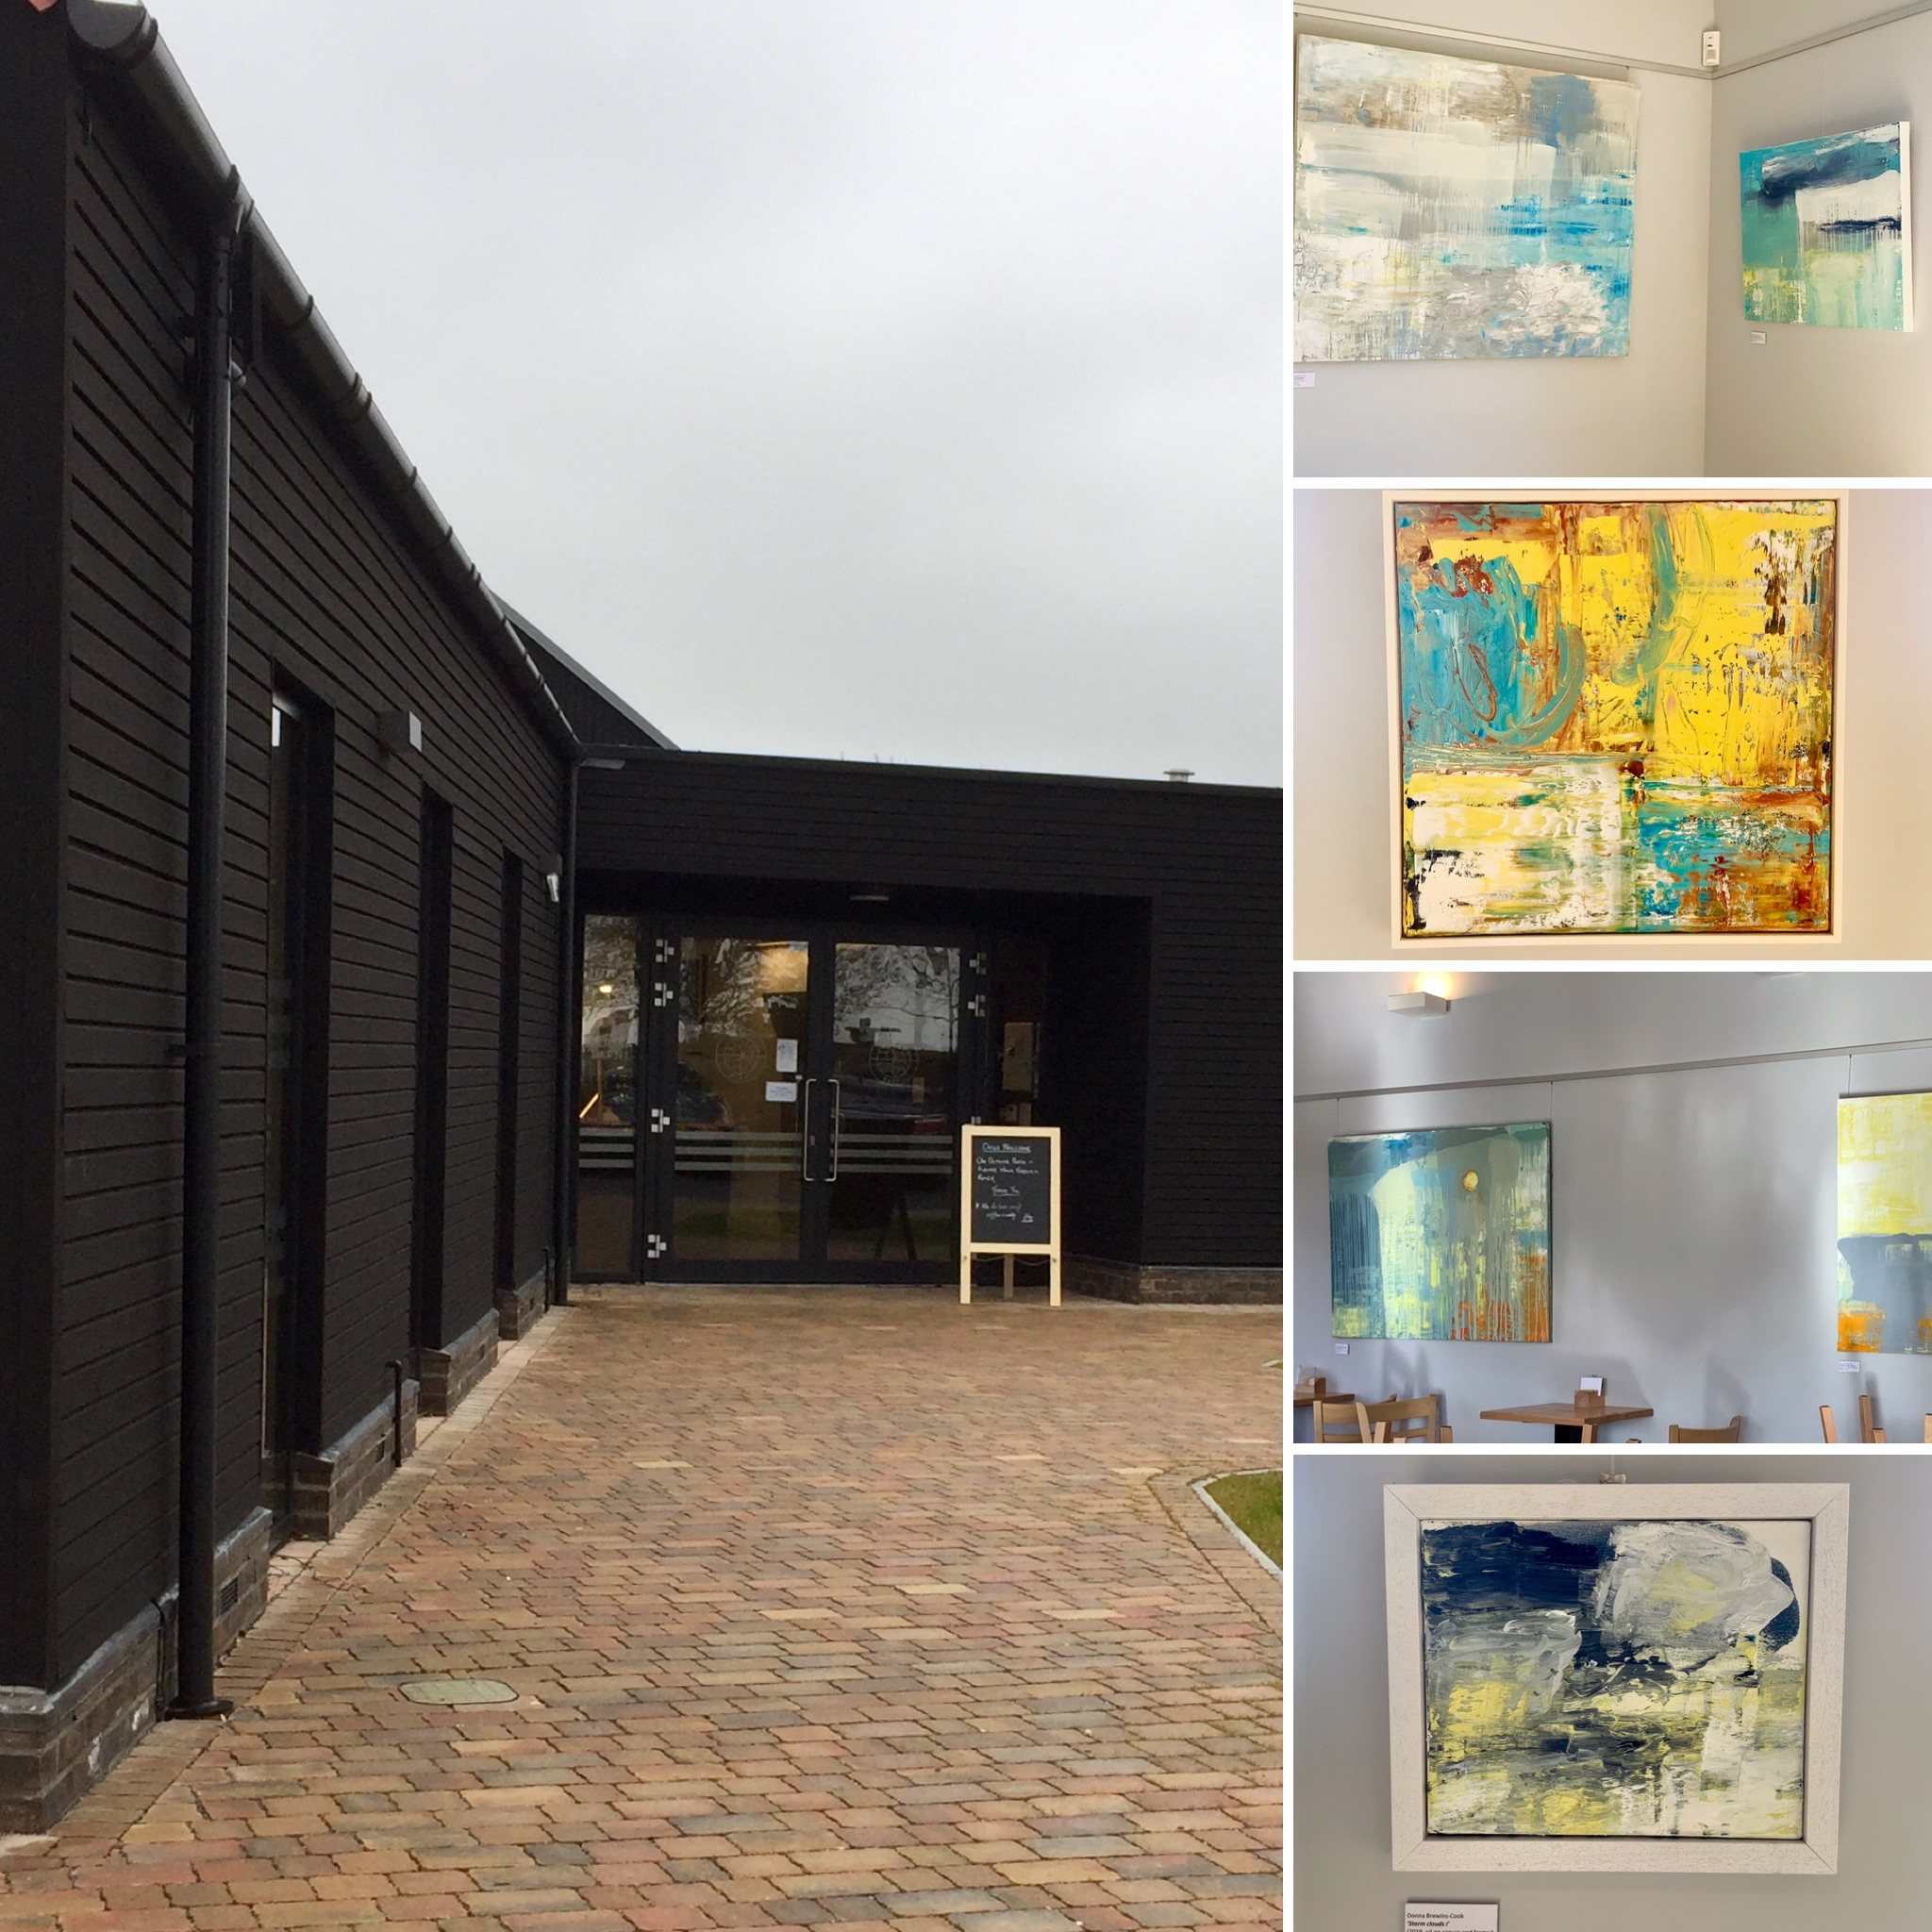 solo shows at Mersea Barns